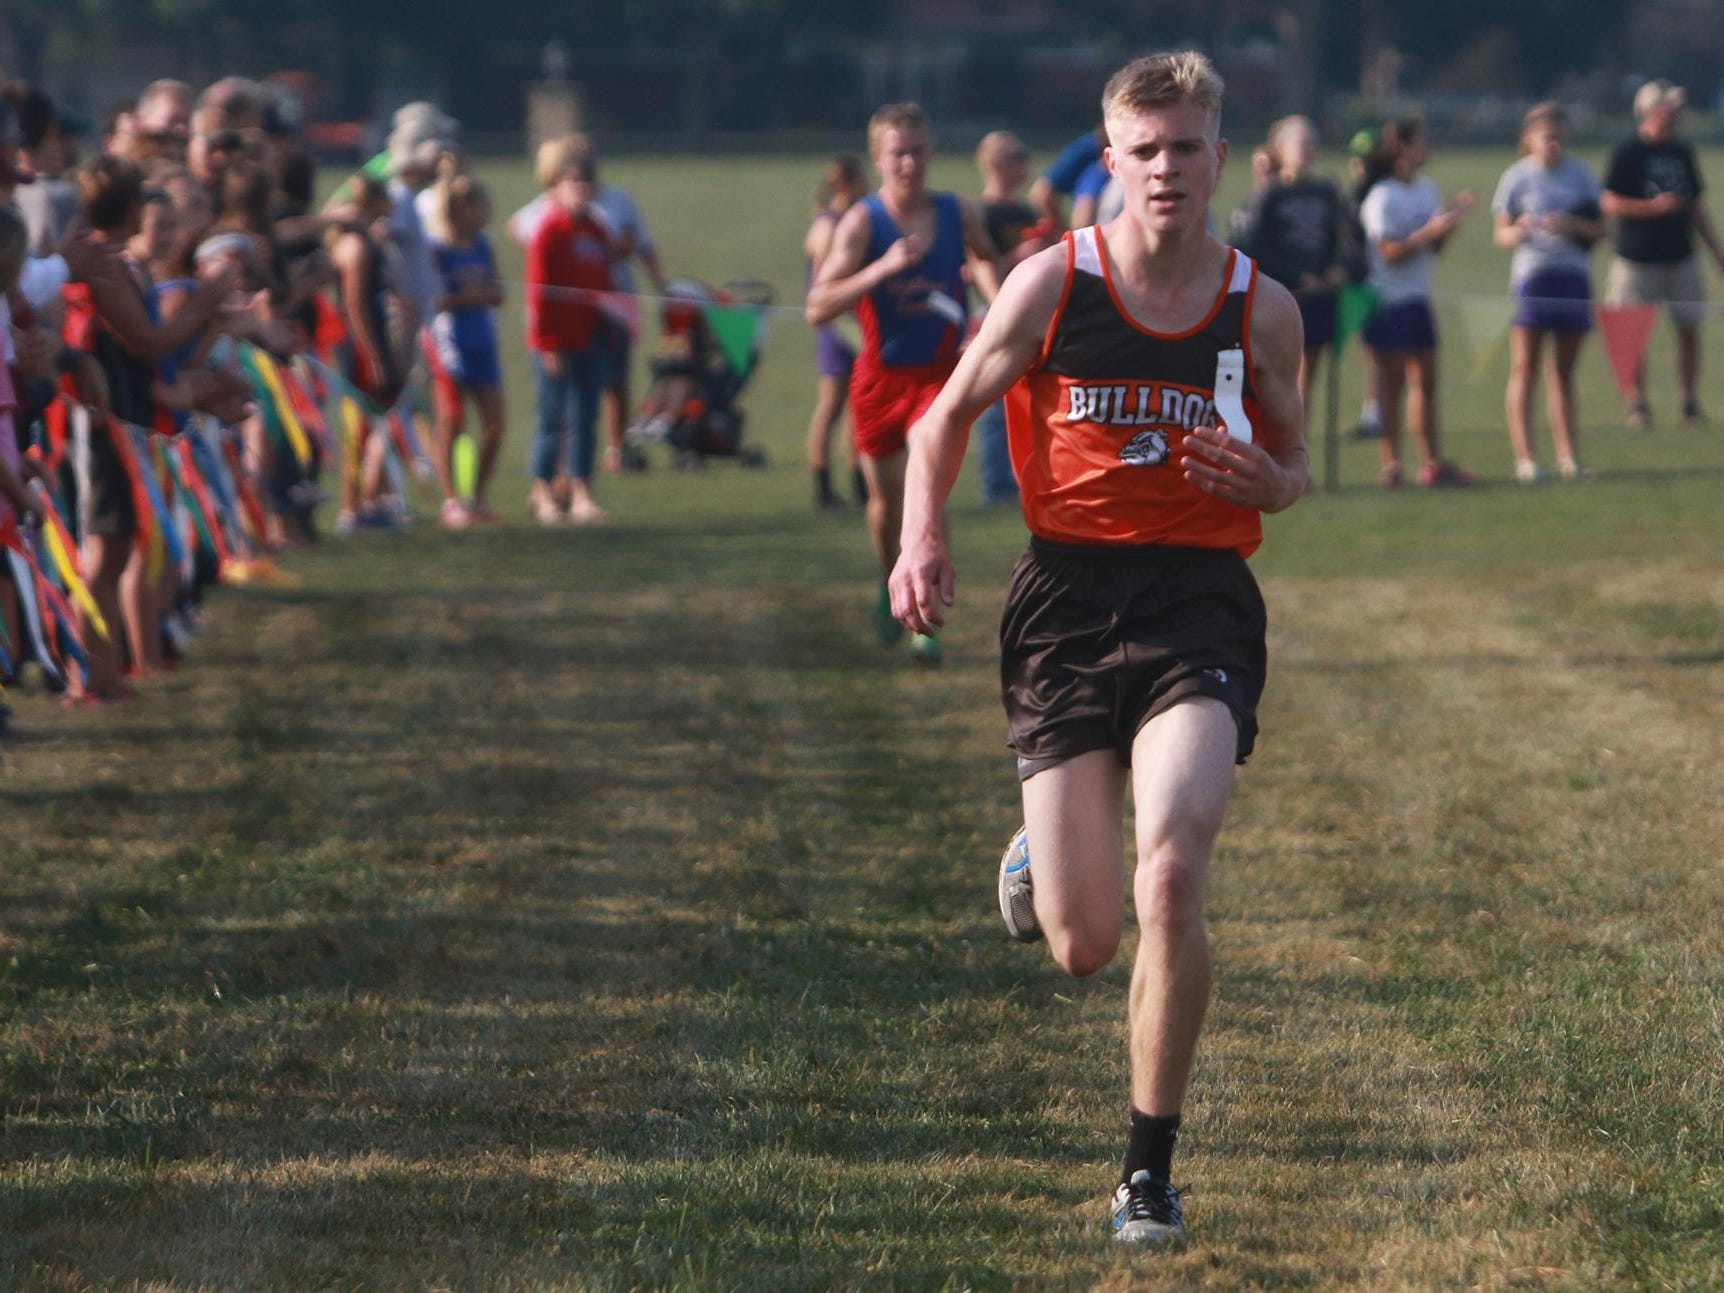 Taylor Hopkins of Heath finished 7th at the Newark Catholic Invitational with a time of 17:06 Saturday, leading the Bulldogs to the championship at Bryn Du Mansion.